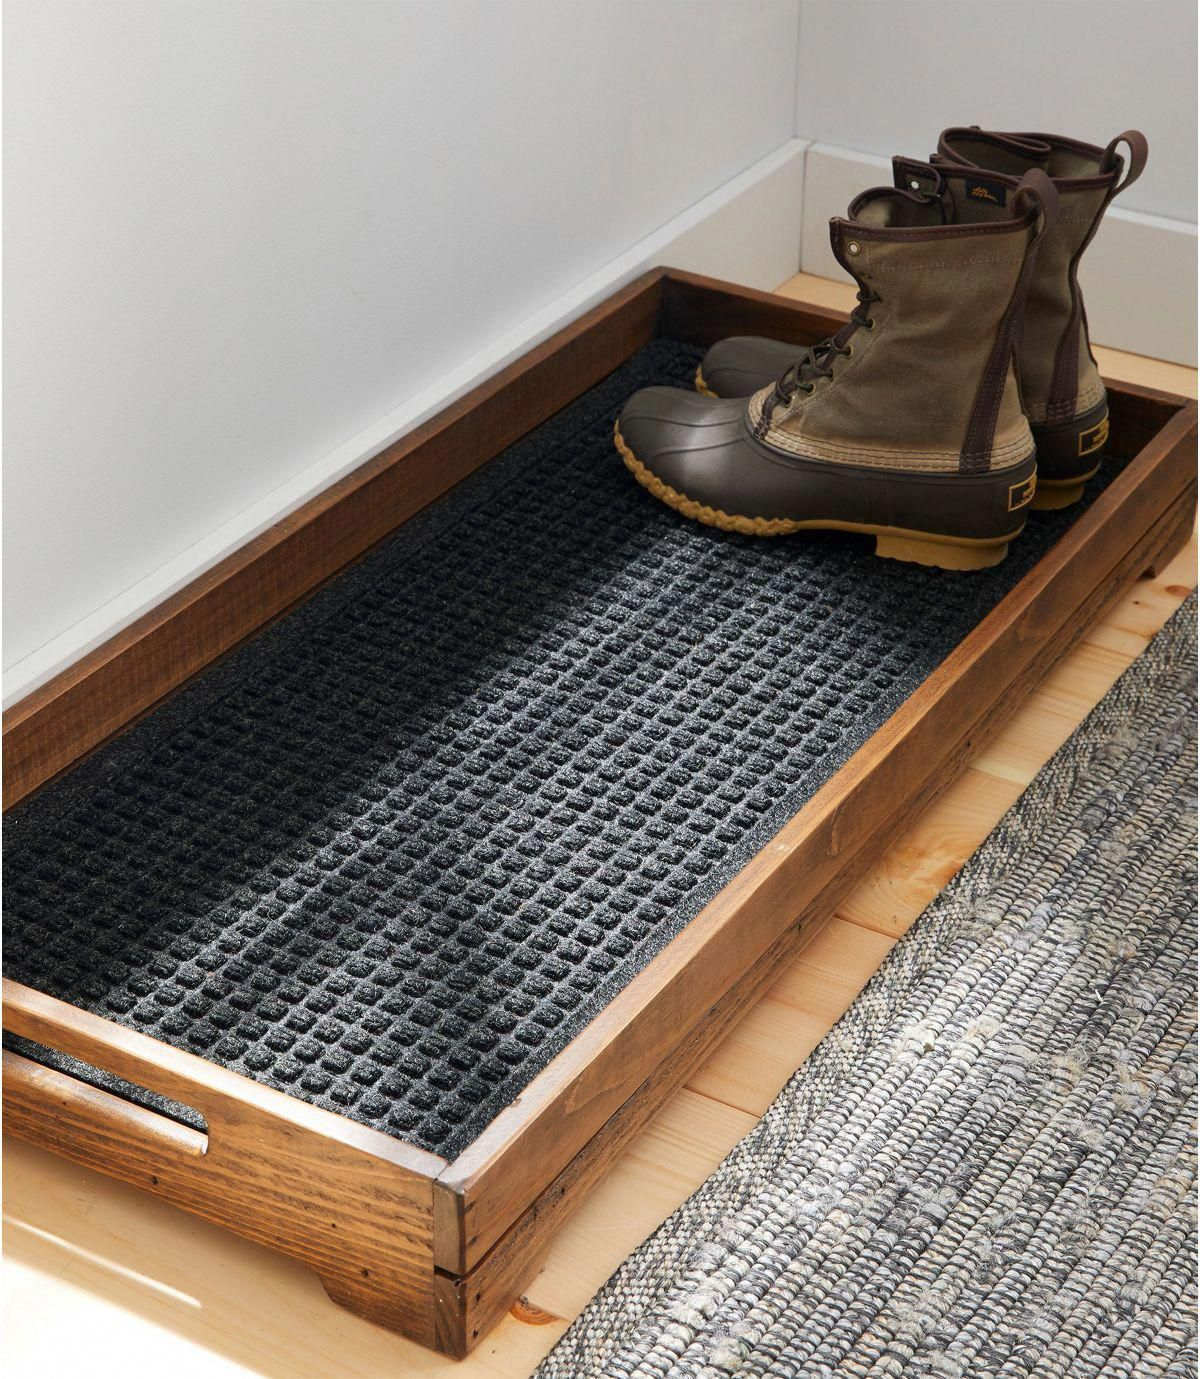 Everyspace Recycled Waterhog Boot Mat